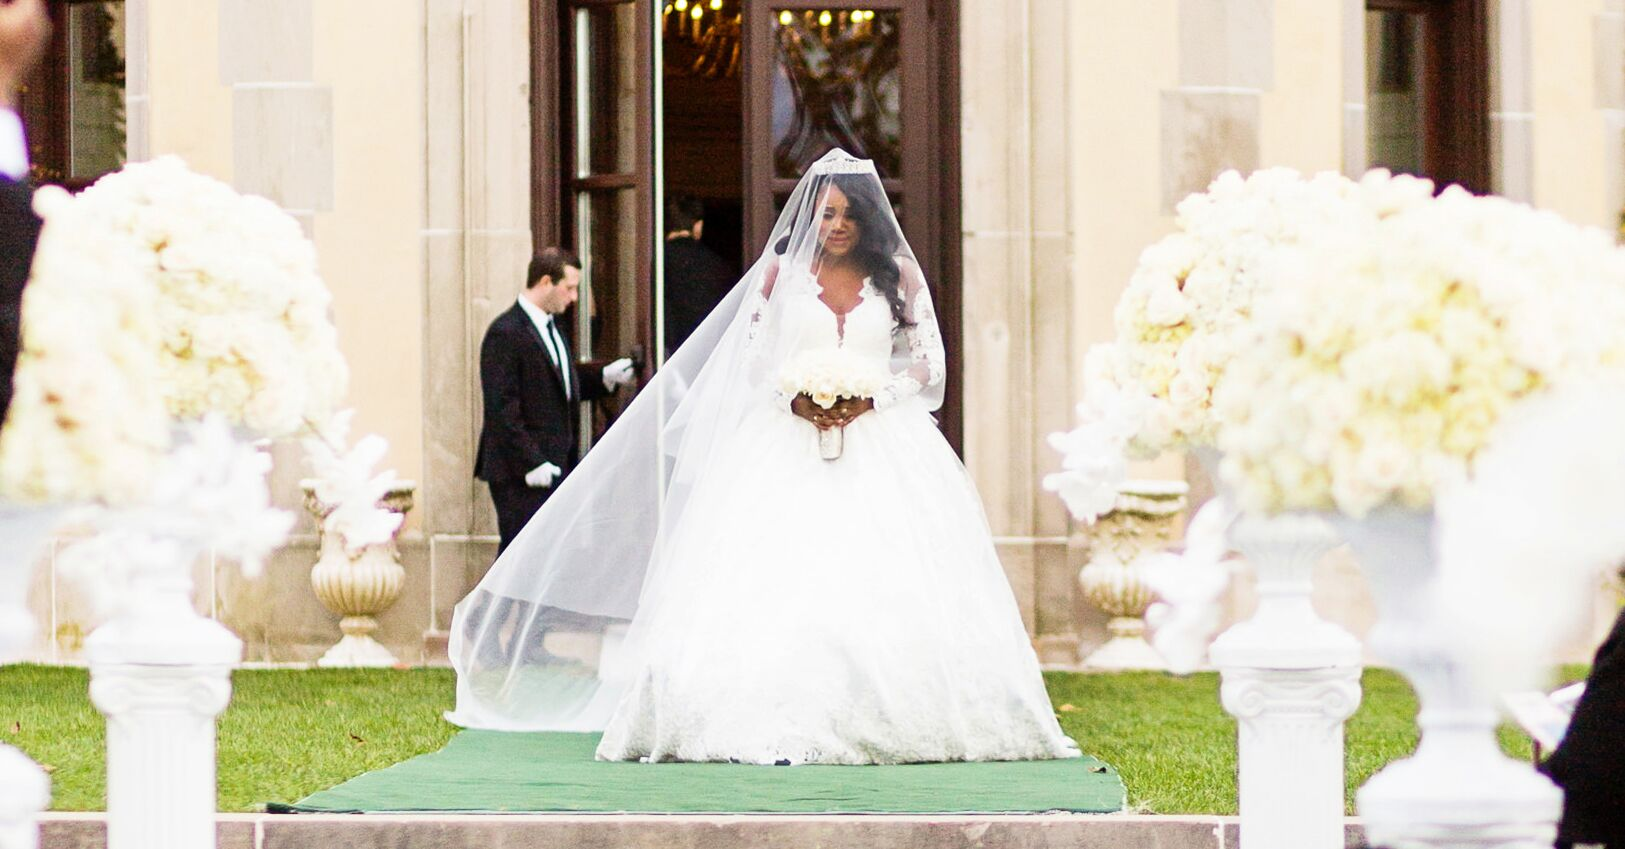 Walk Down The Aisle Wedding Songs: The Best Unique And Nontraditional Songs To Walk Down The